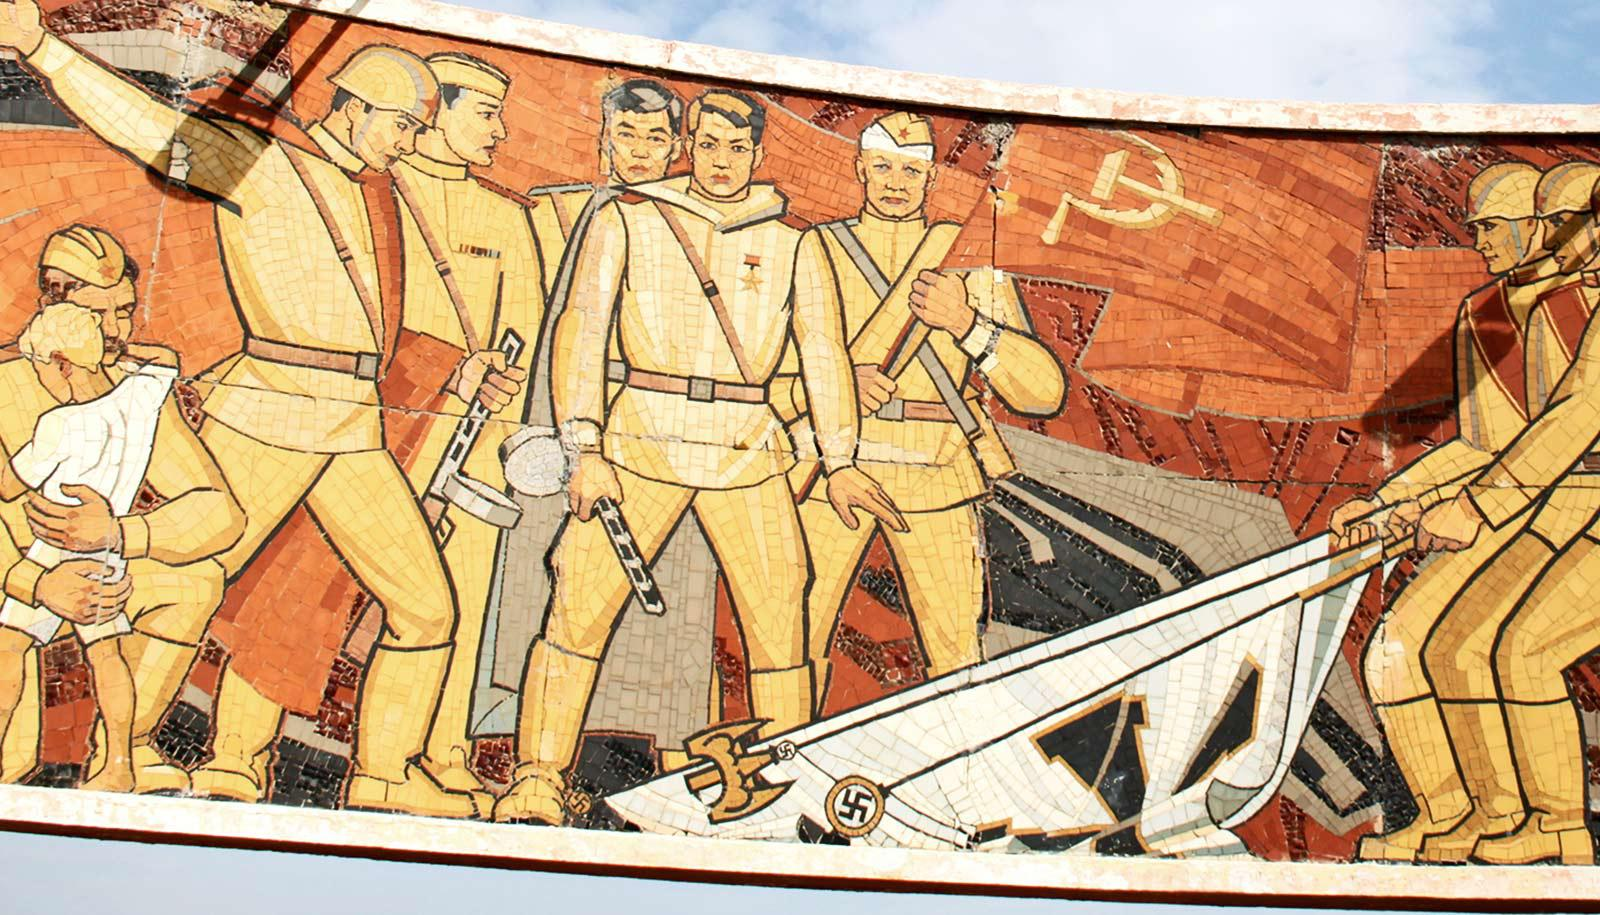 Russian war memorial shows Soviet soldiers in tan uniforms taking down Nazi flags and holding up the Soviet banner.